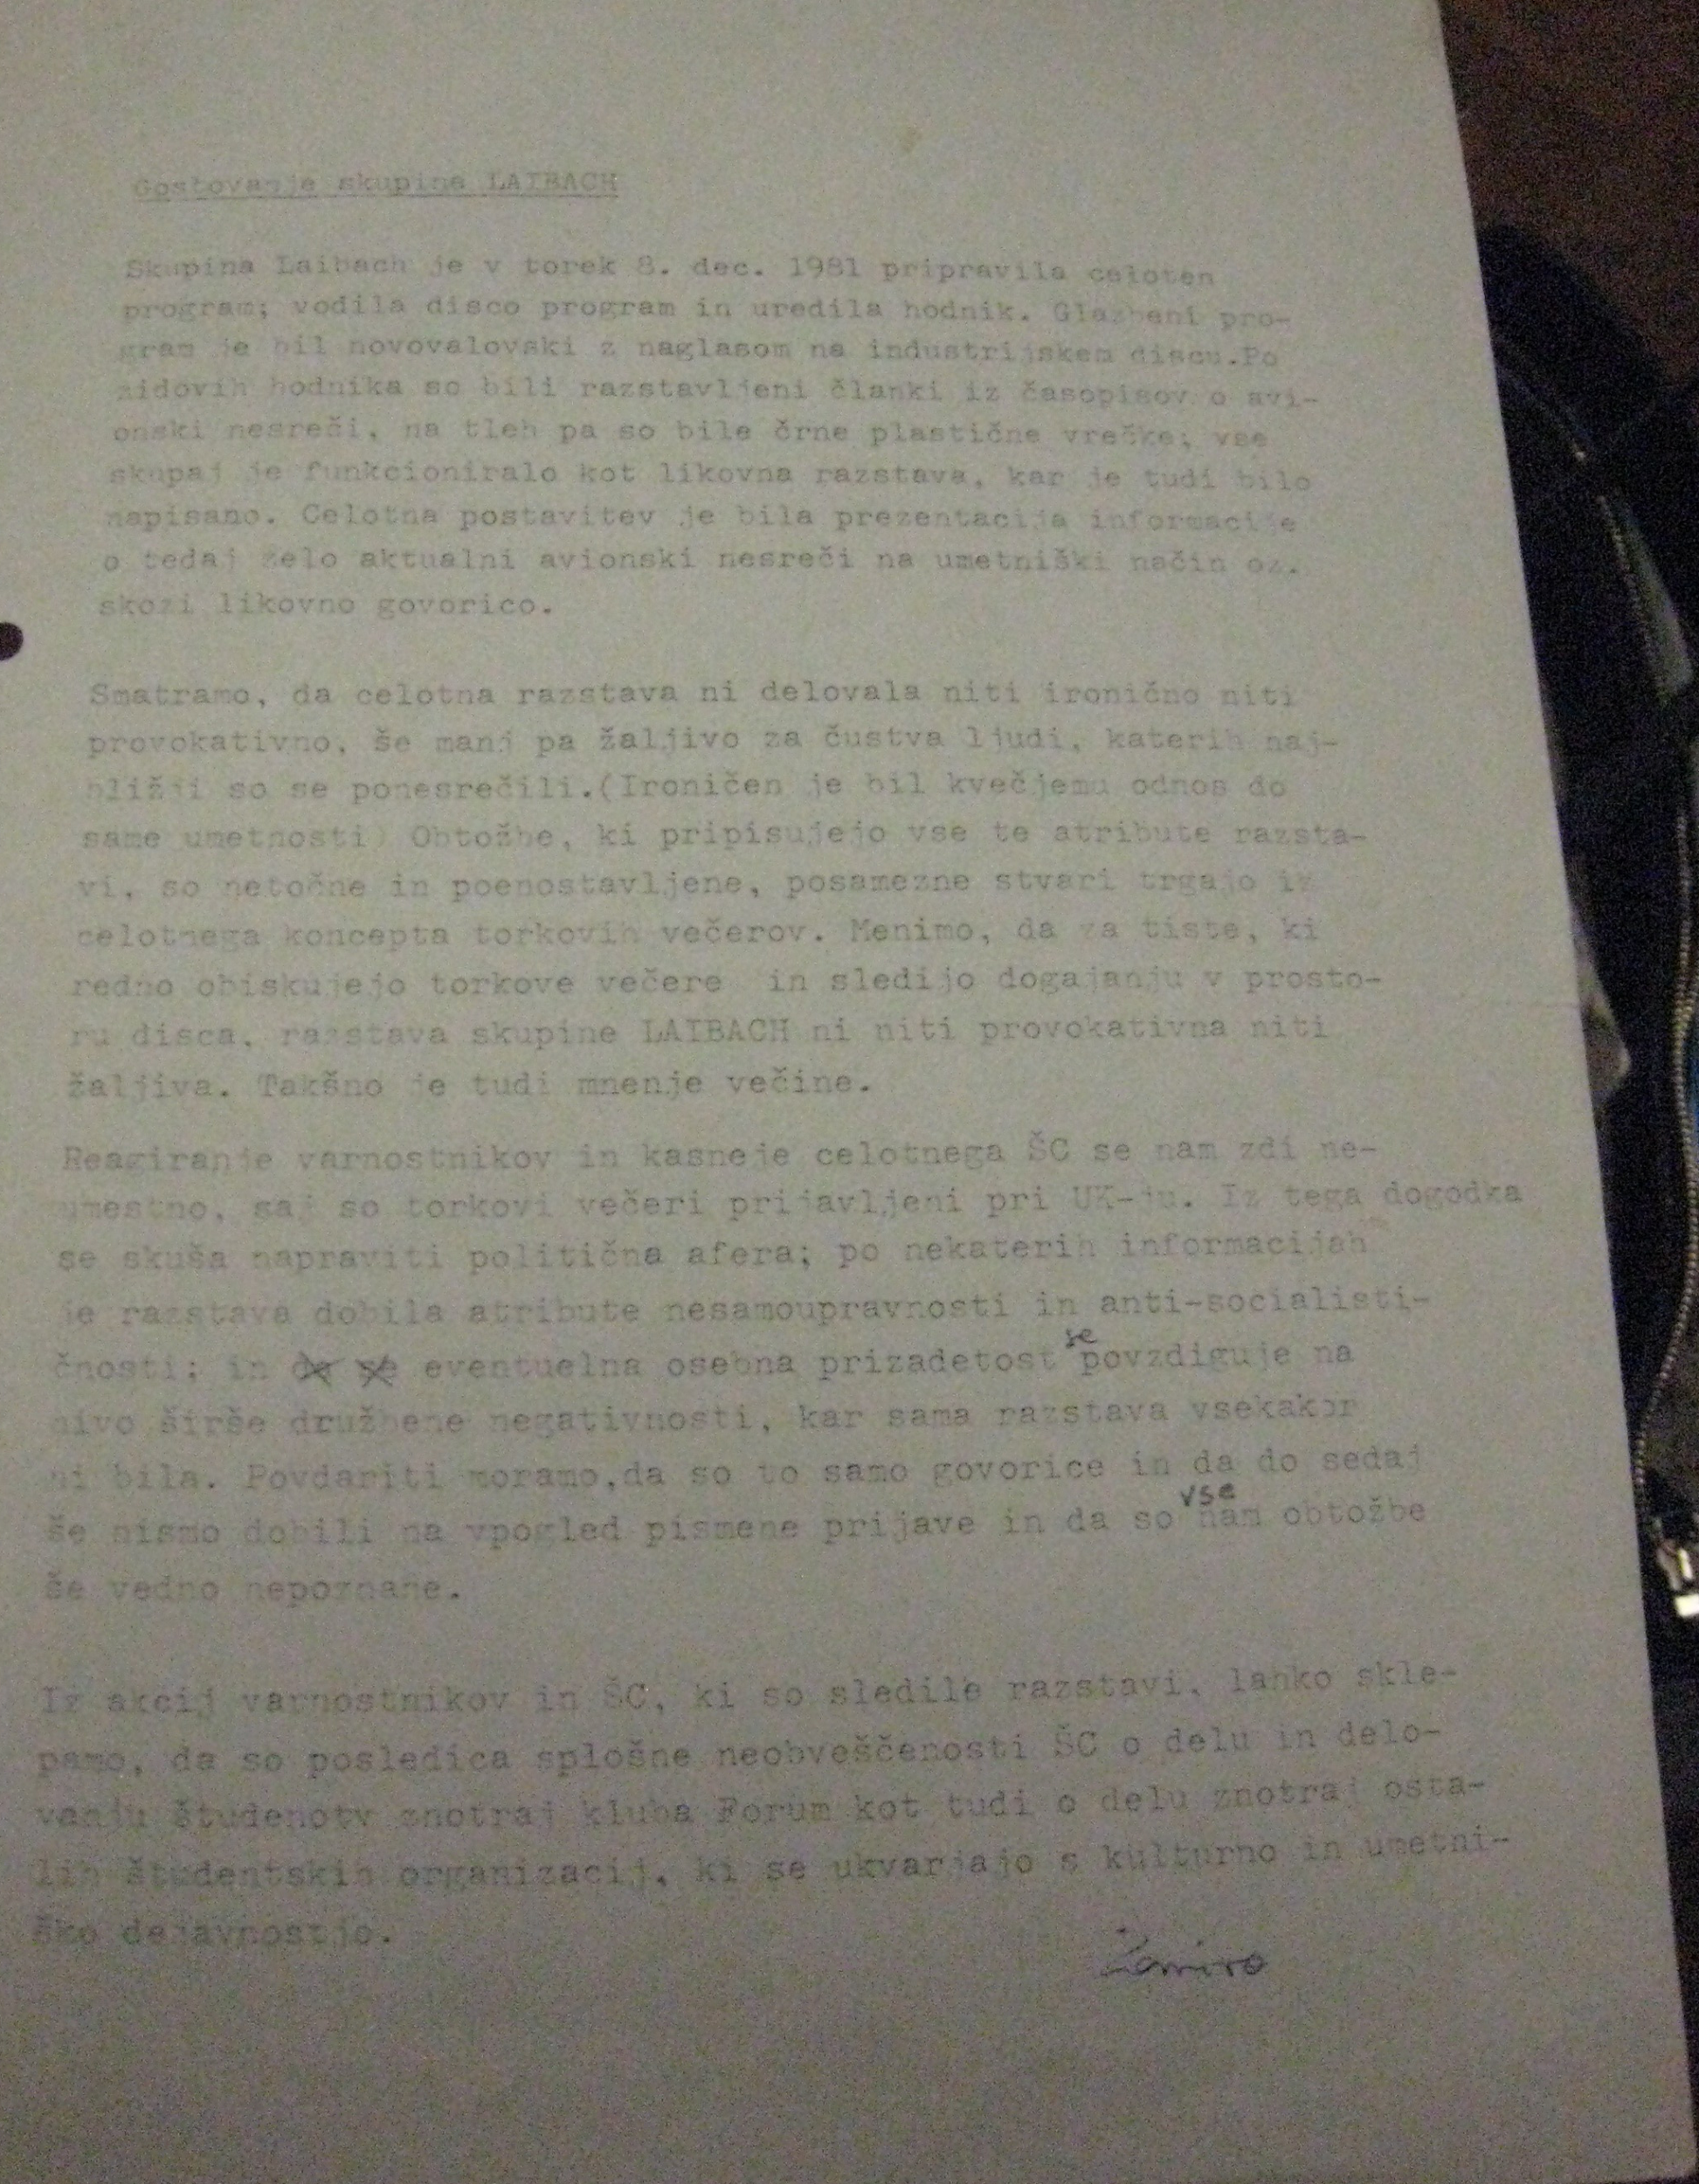 Document: Report on Hosting of Group Laibach at FV Disco in december 1981 from The bundle with The FV Group archive materials at MGLC. The text describes the objections of security guards that the show was antisocialist and againts self-management. (2017-17-01)